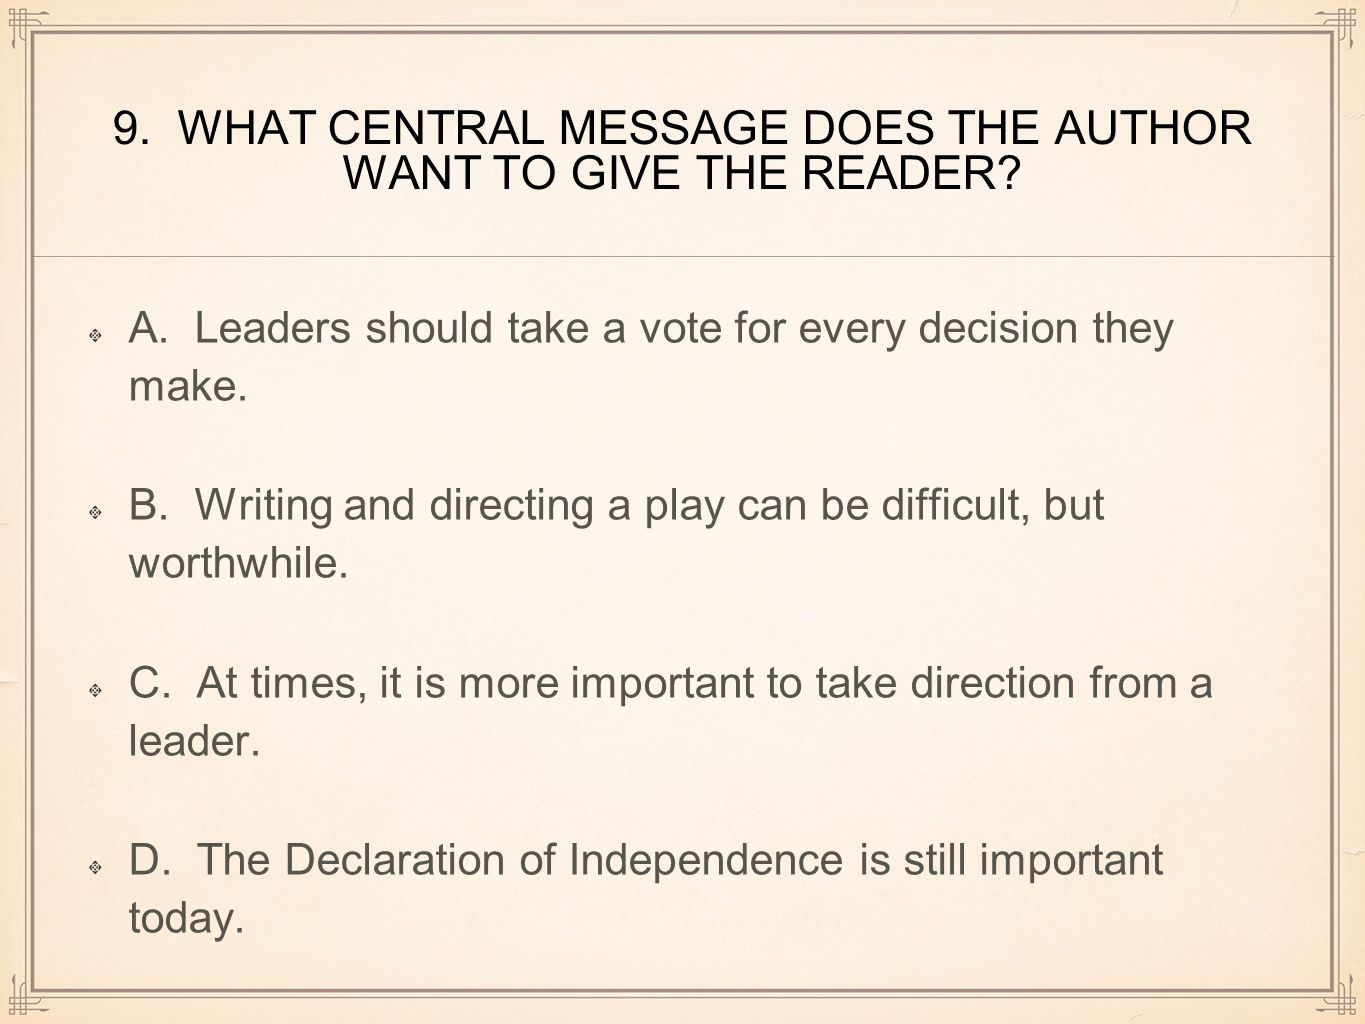 9. WHAT CENTRAL MESSAGE DOES THE AUTHOR WANT TO GIVE THE READER